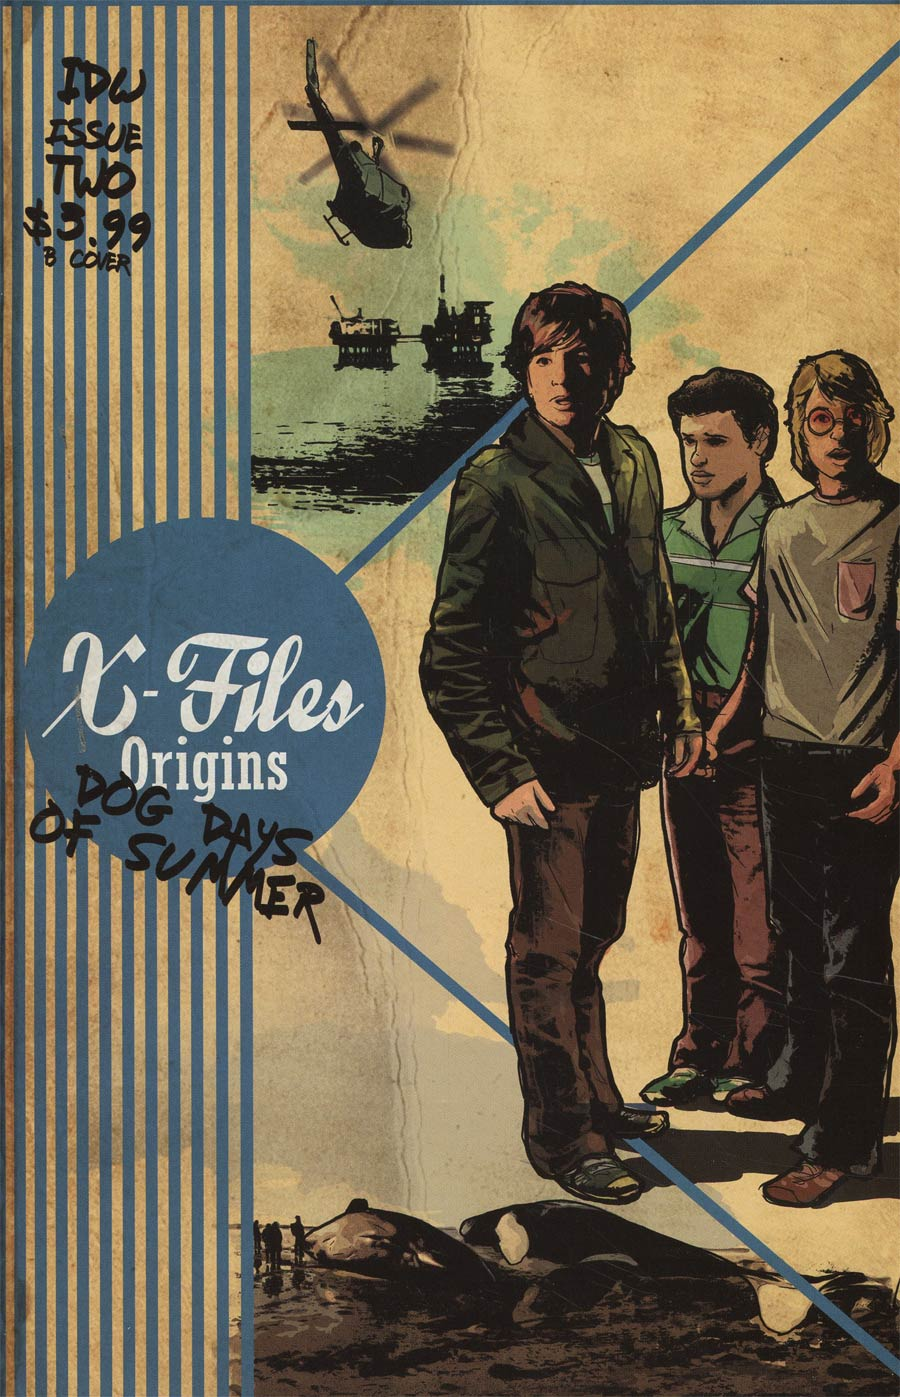 X-Files Origins II Dog Days Of Summer #2 Cover B Variant Cat Staggs Cover